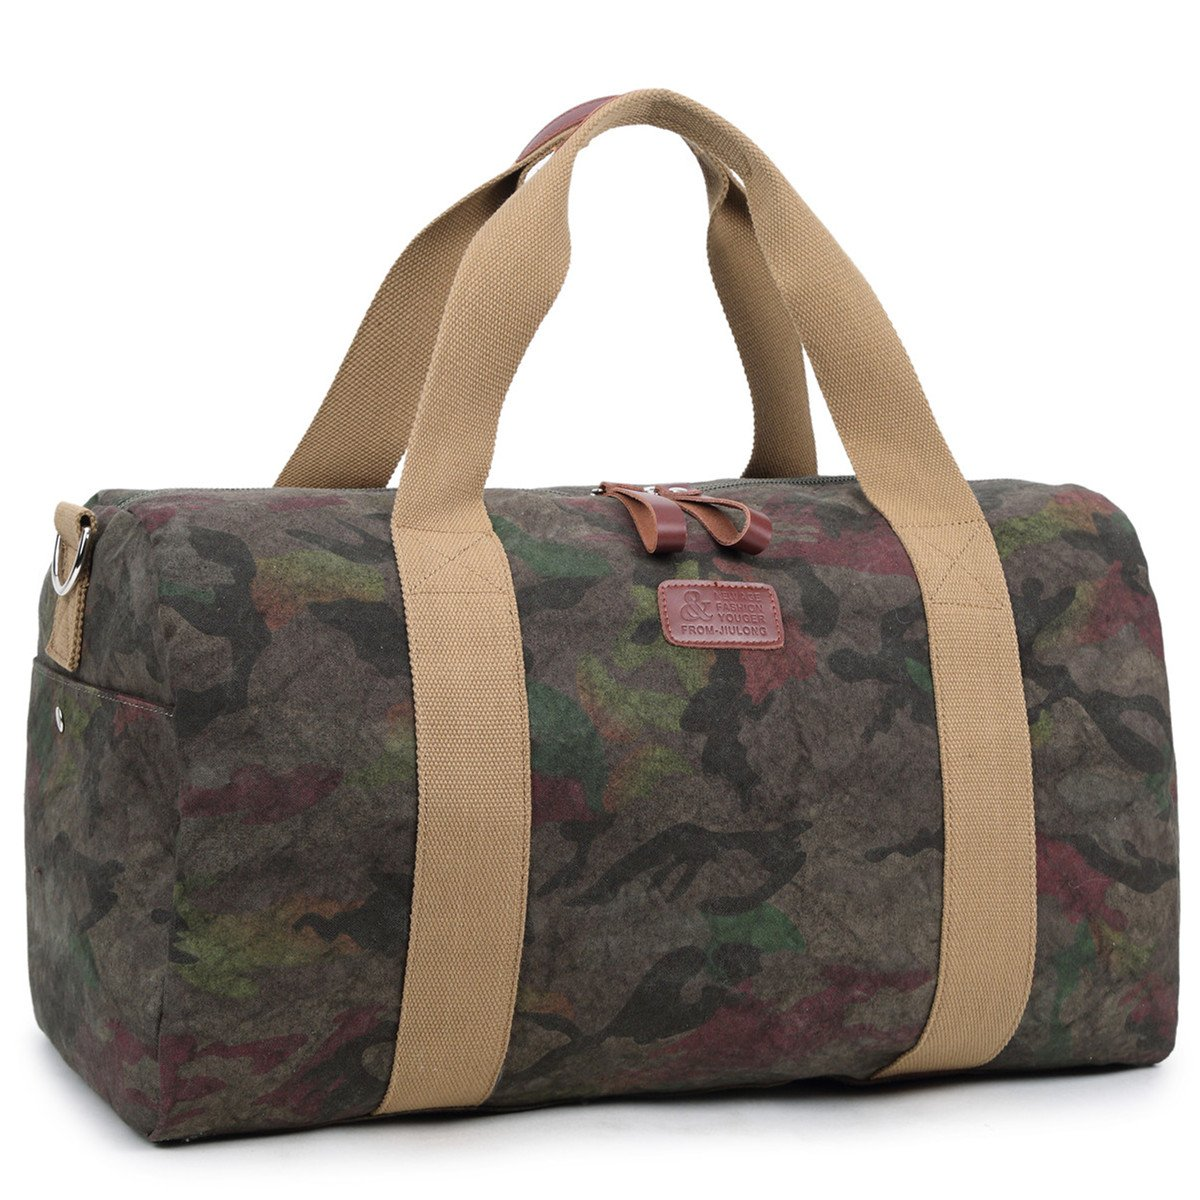 Carry-on Weekender Travel bag Canvas Overnight Duffel Tote for Business Work Gym Day Trips (Camo)